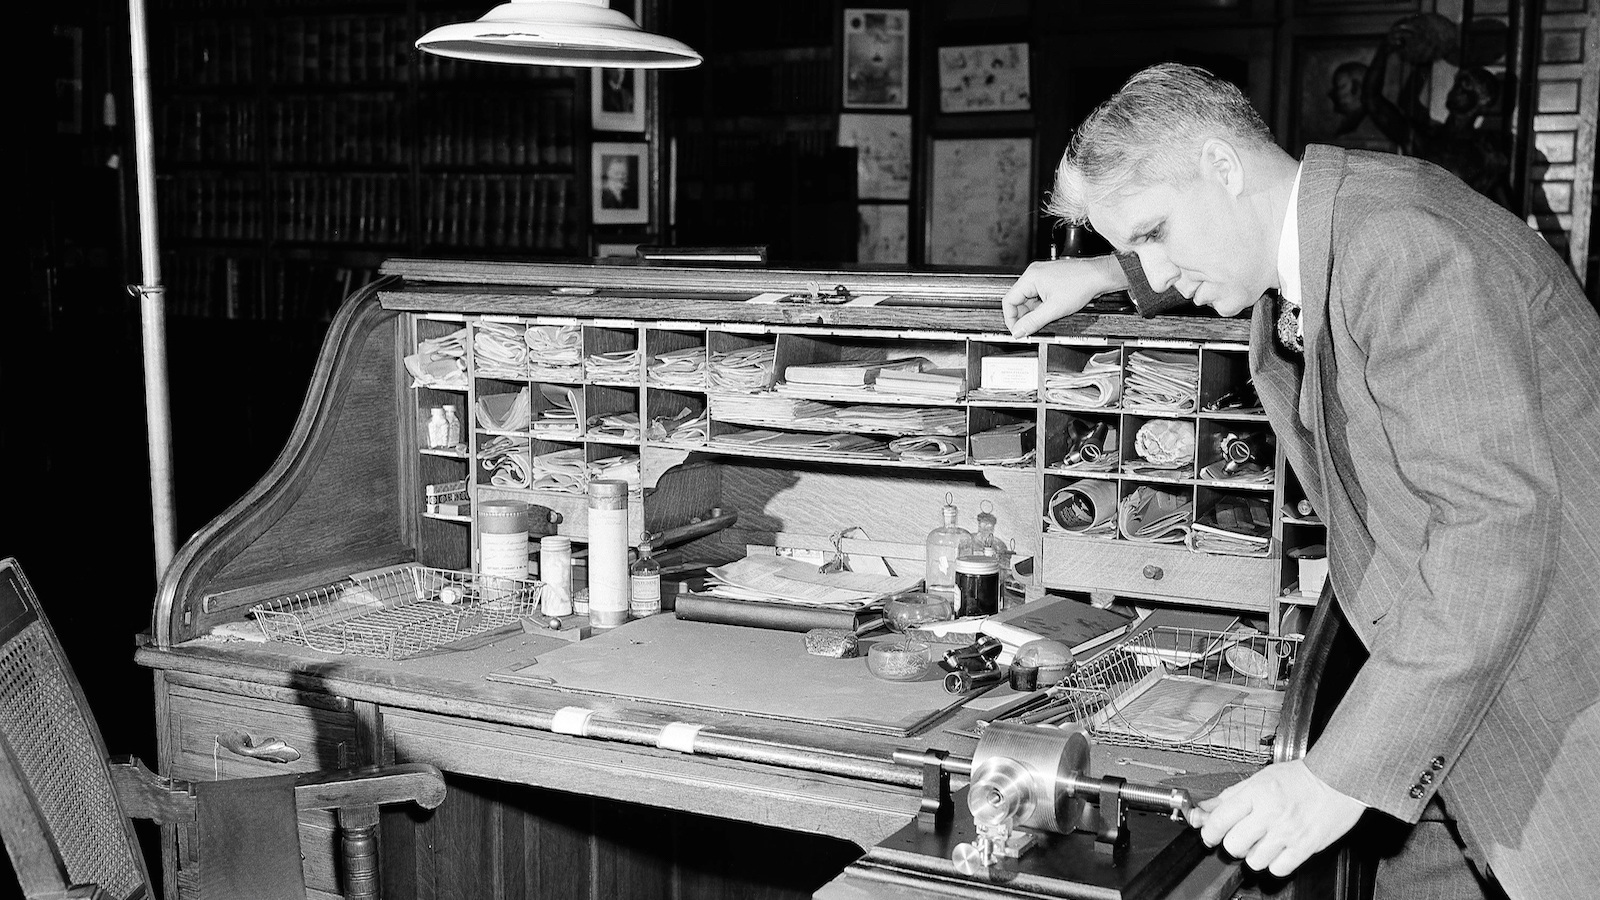 "At the private desk of Thomas A. Edison, Norman R. Speiden, curator of the library on Jan. 27, 1948, studies the inventor's original phonograph, made in 1877. The contents of the desk, as they were found when it was opened in 1946, fifteen years after Edison's death, include a sealed can of lithium, bottle of reduced iron, chlorinated rubber, ""Carissa"" jelly made by a Mrs. Stevens in 1928, old papers and business letters and contract early phonograph, dating from 1878 to 1890. (AP Photo/Carl Nesensohn)"